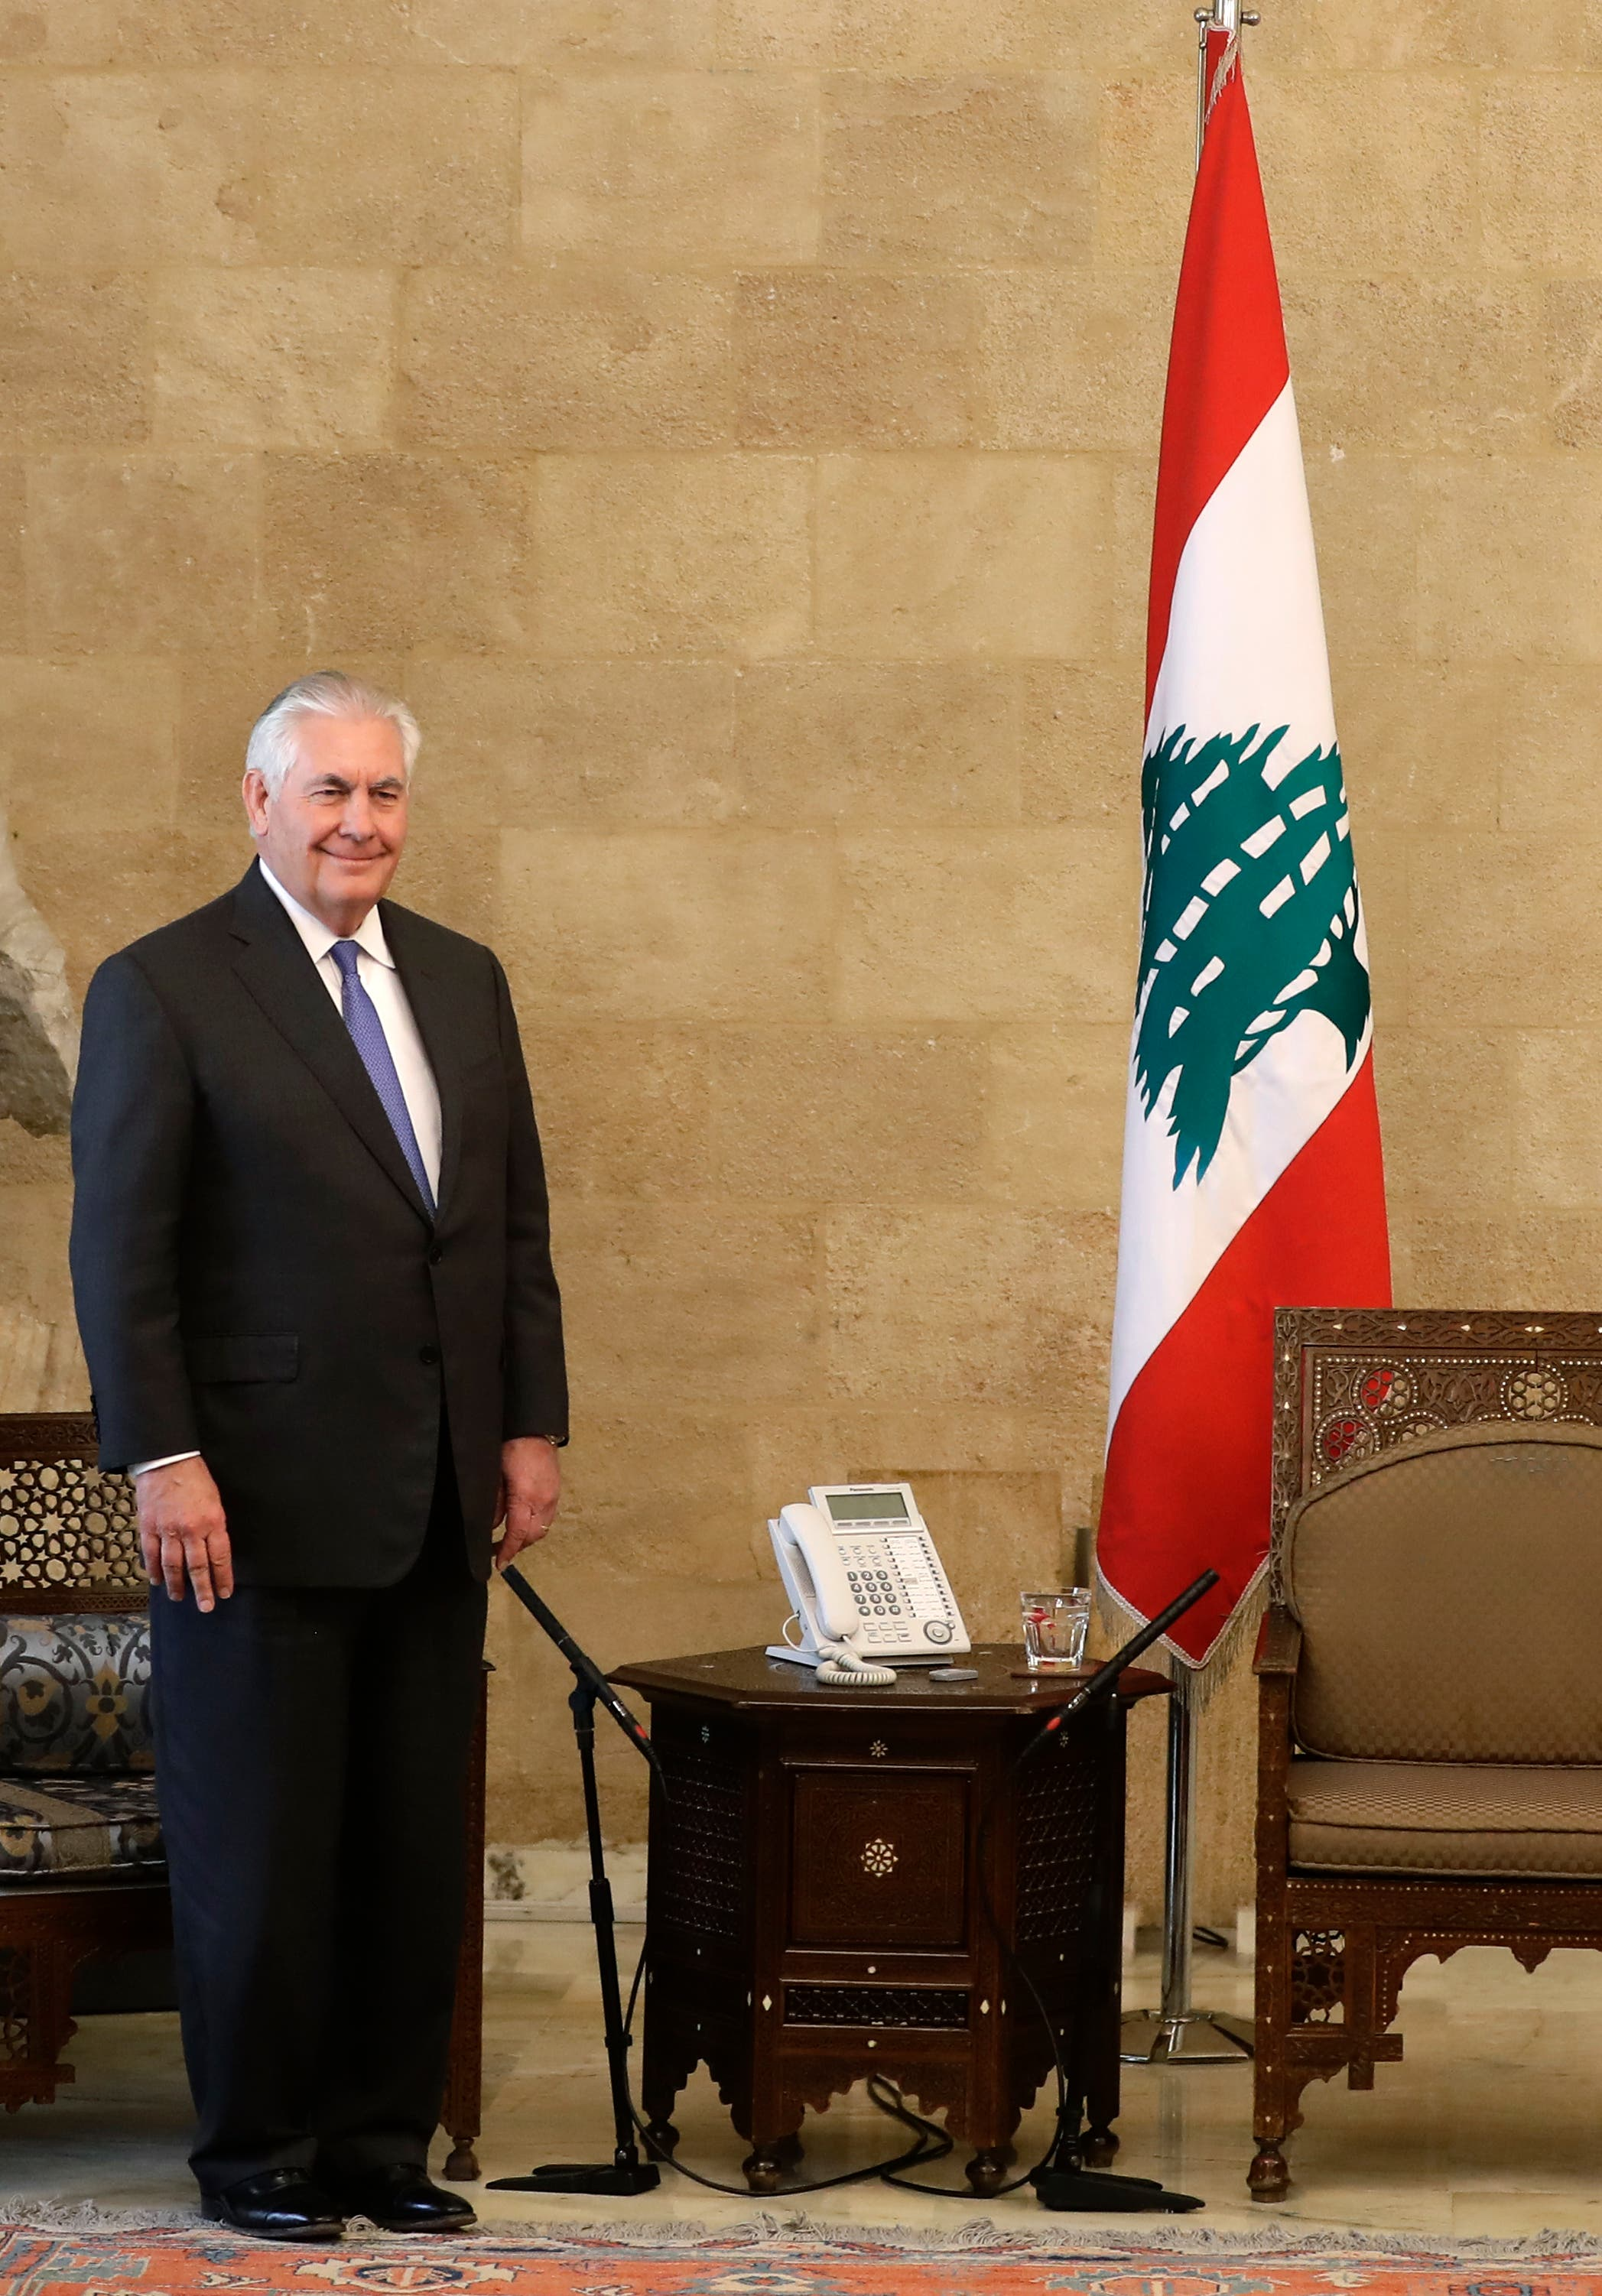 U.S. Secretary of State Rex Tillerson is seen at the presidential palace in Baabda, Lebanon February 15, 2018. REUTERS/Mohamed Azakir